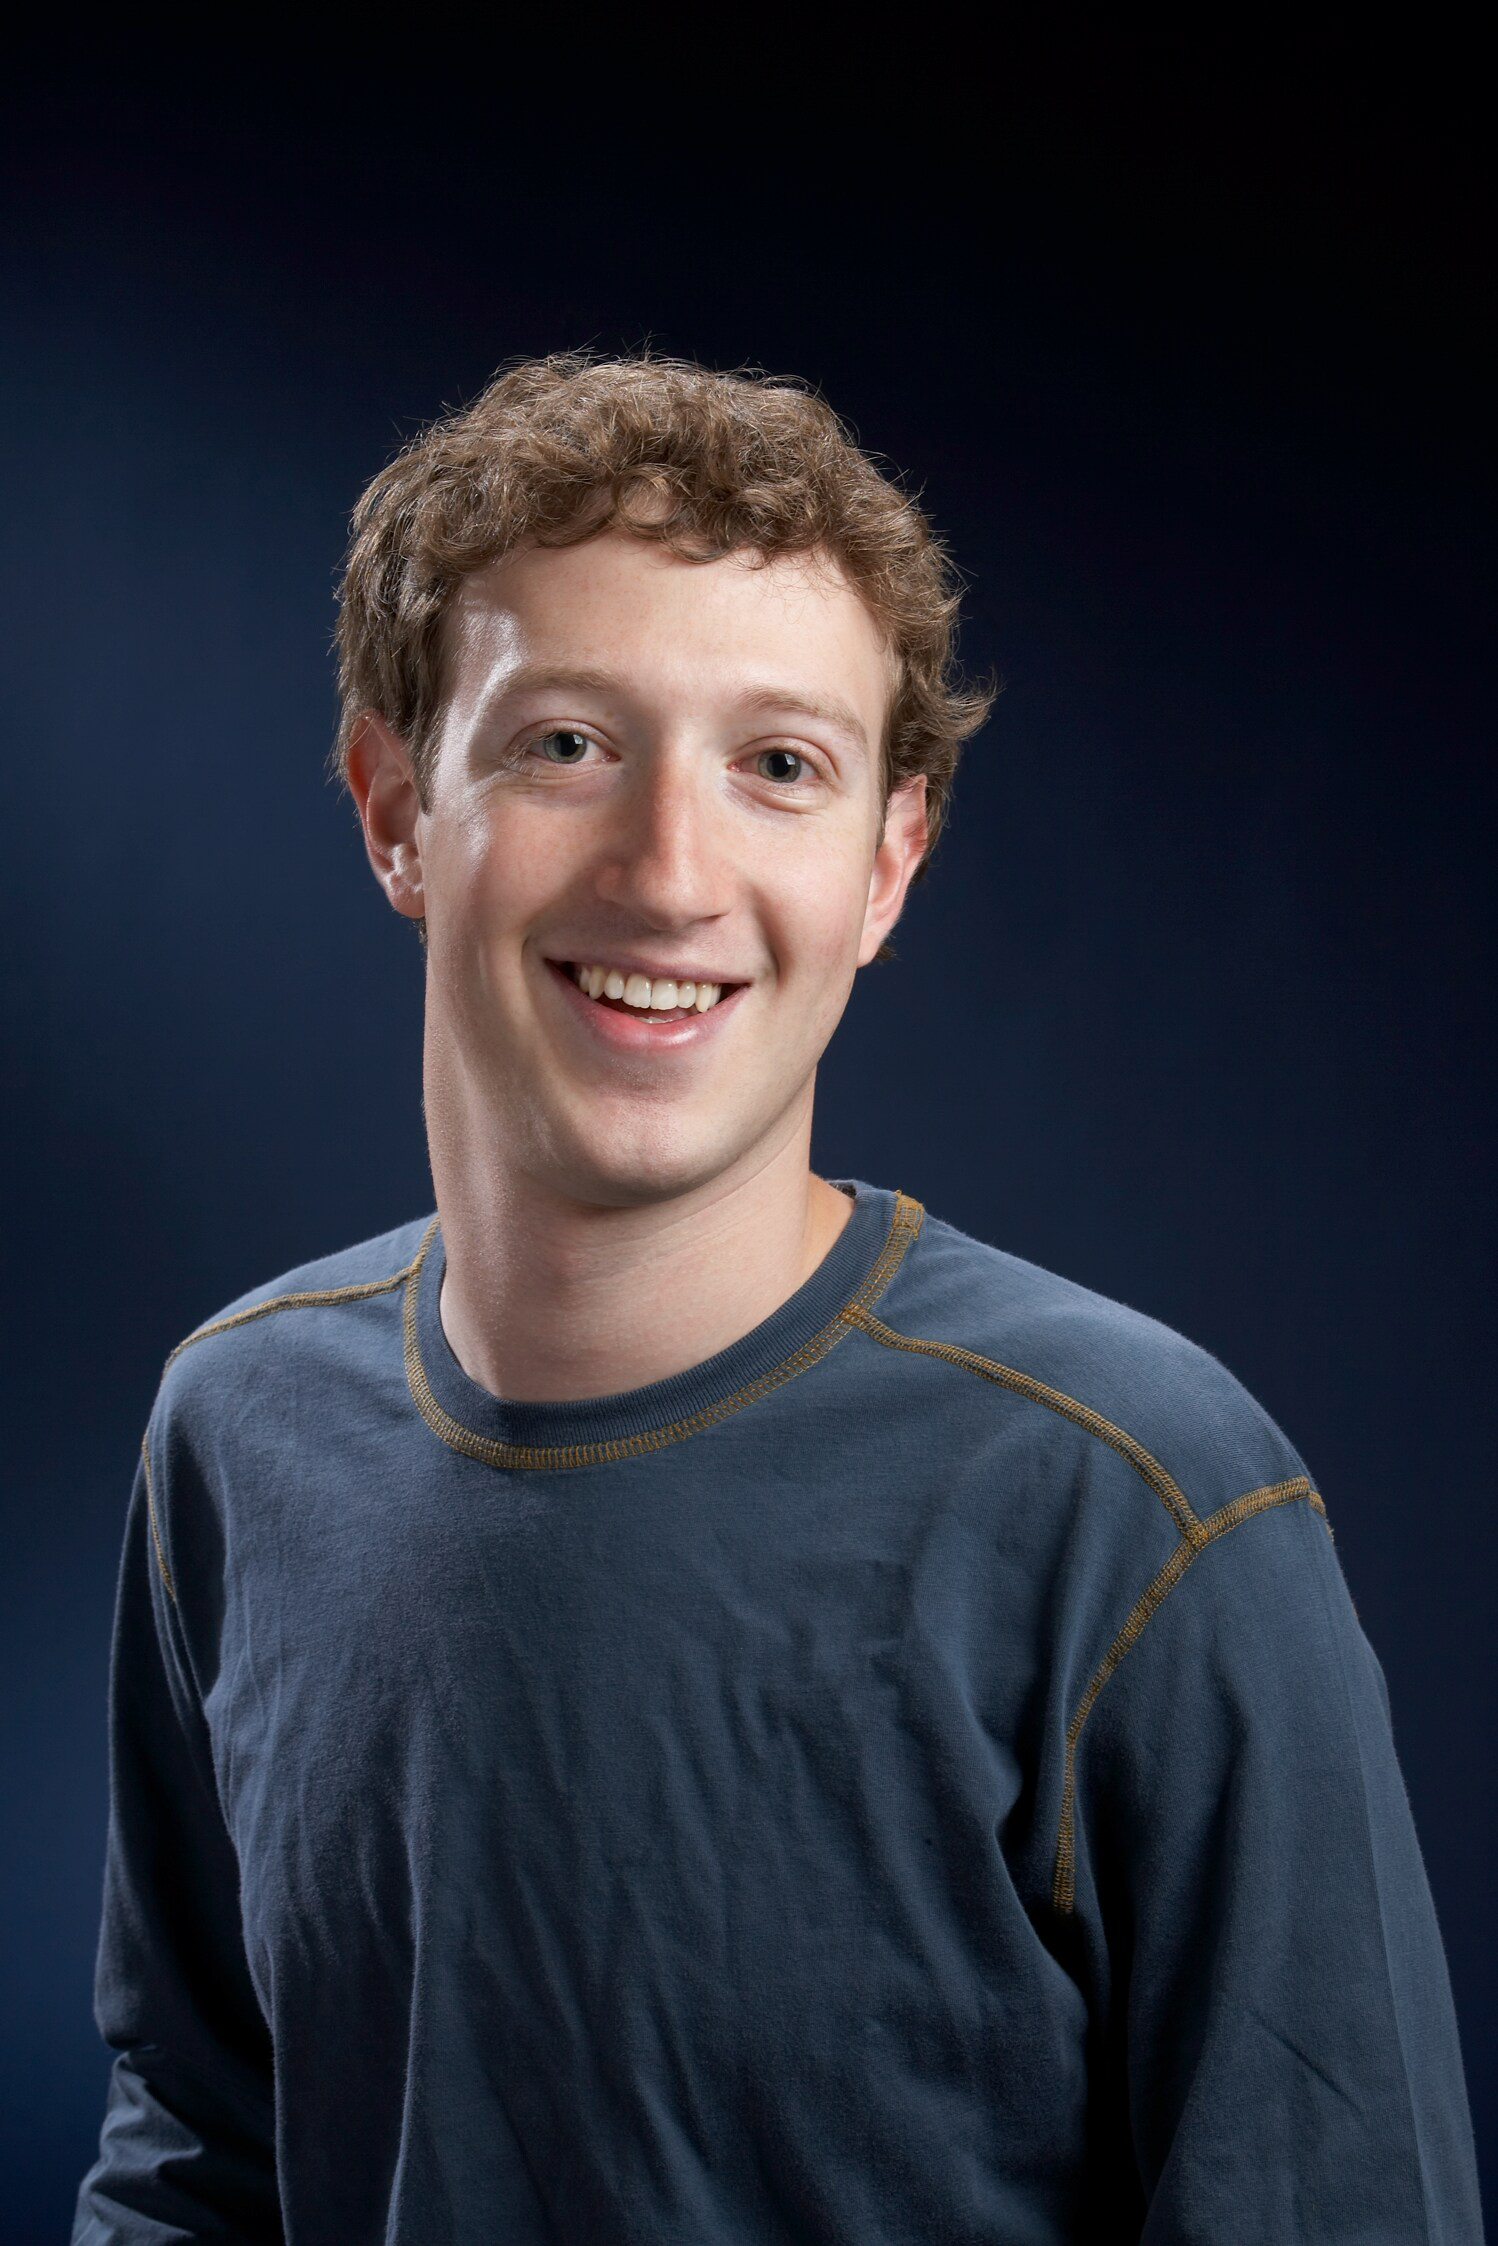 Facebook Newark Schools Mark Zuckerberg